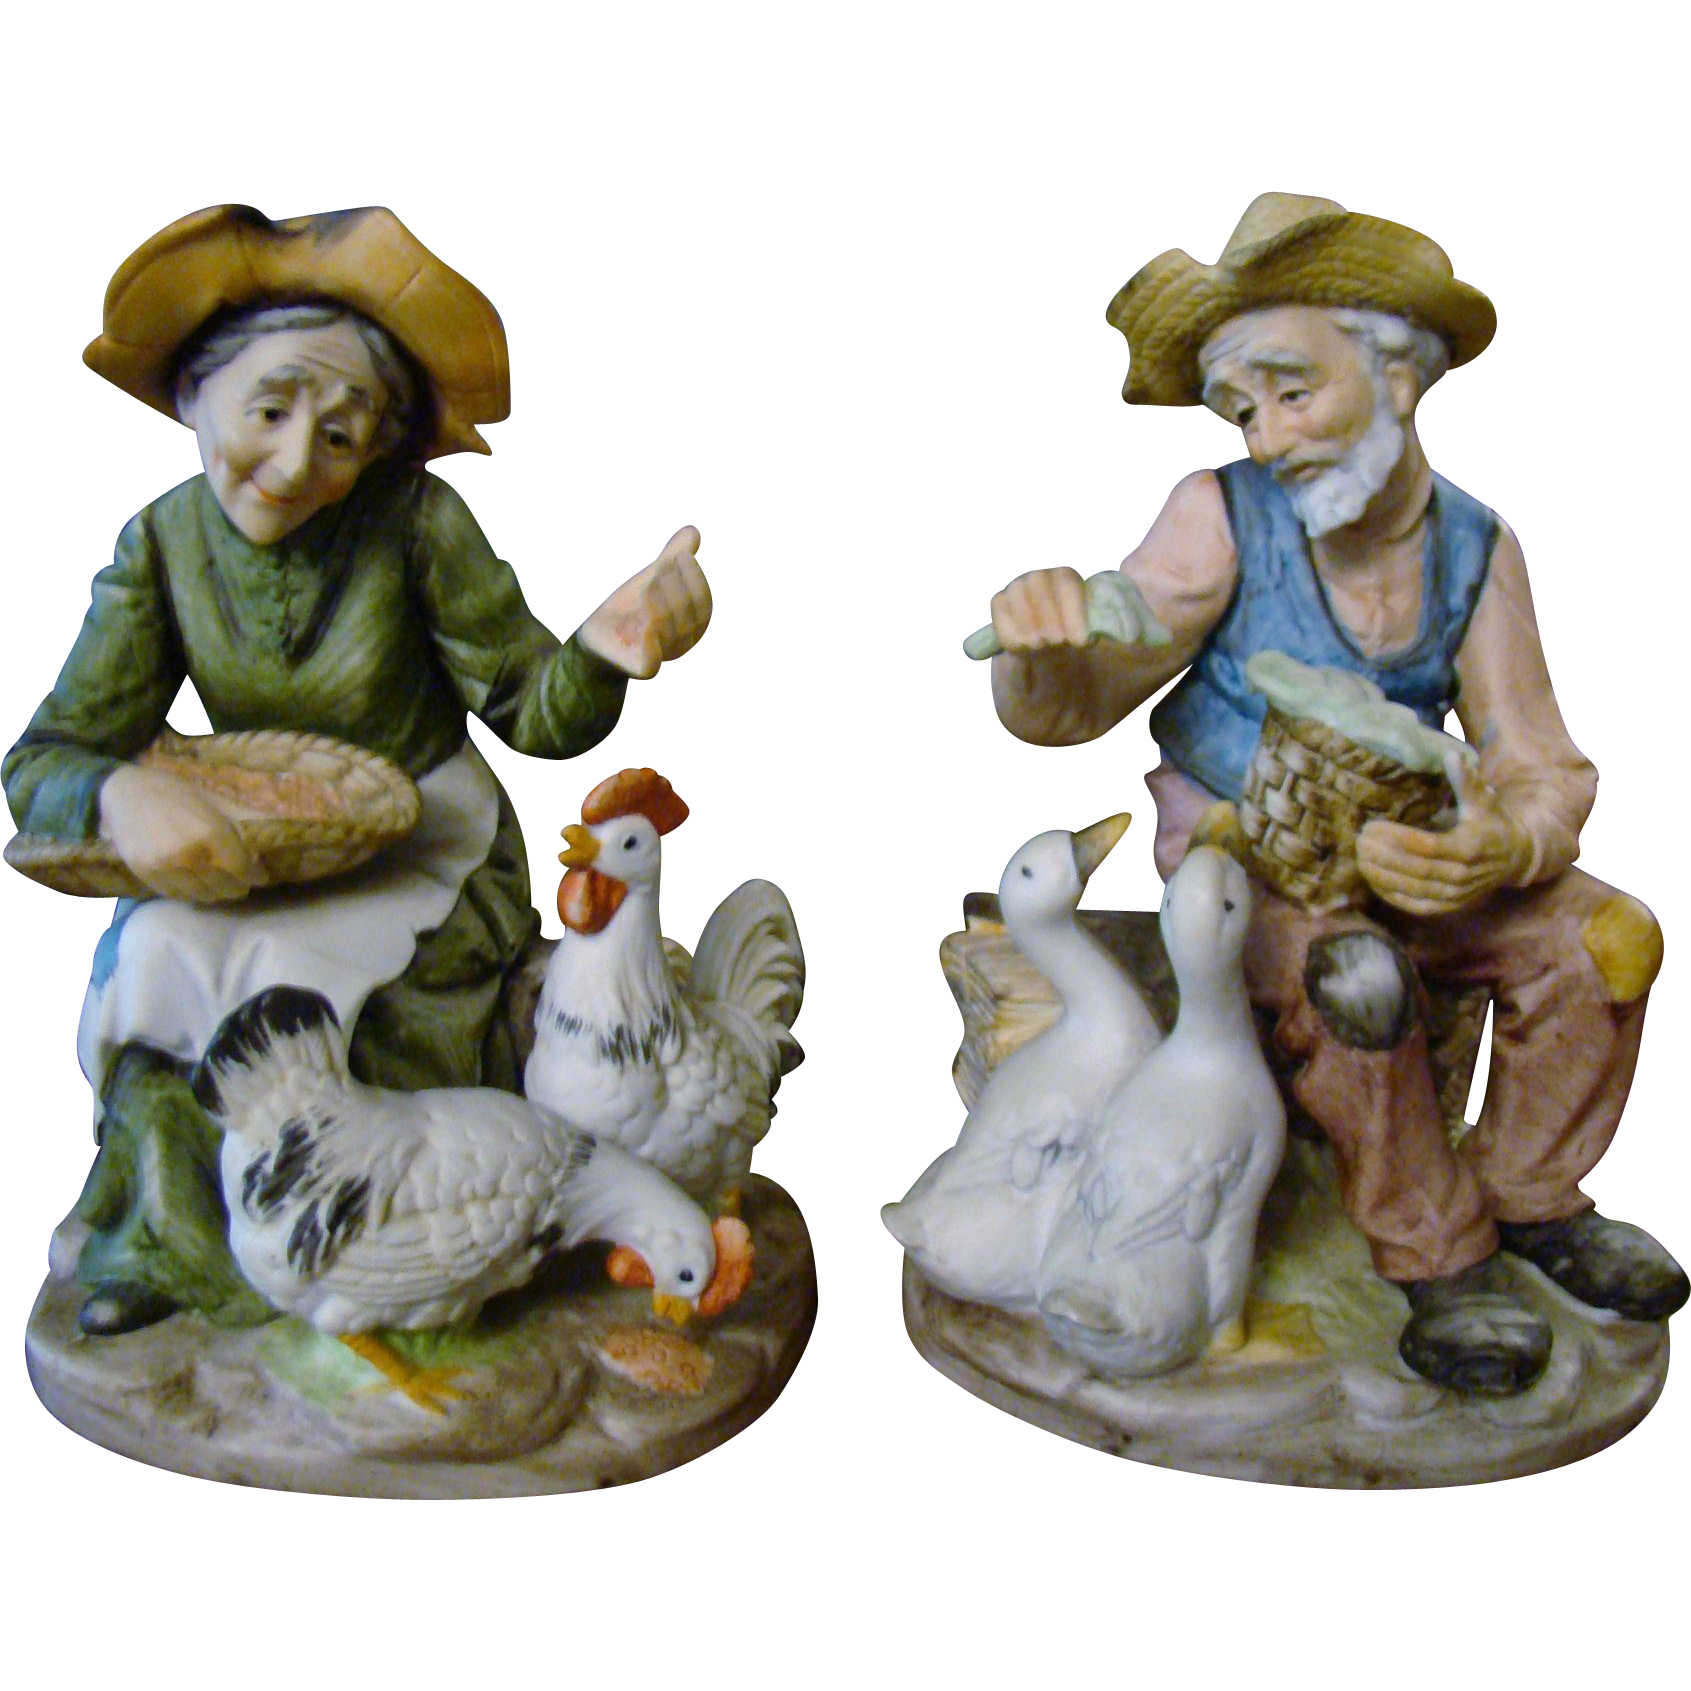 Old Couple Bisque Porcelain Figurines ~ Feeding Ducks and Chickens